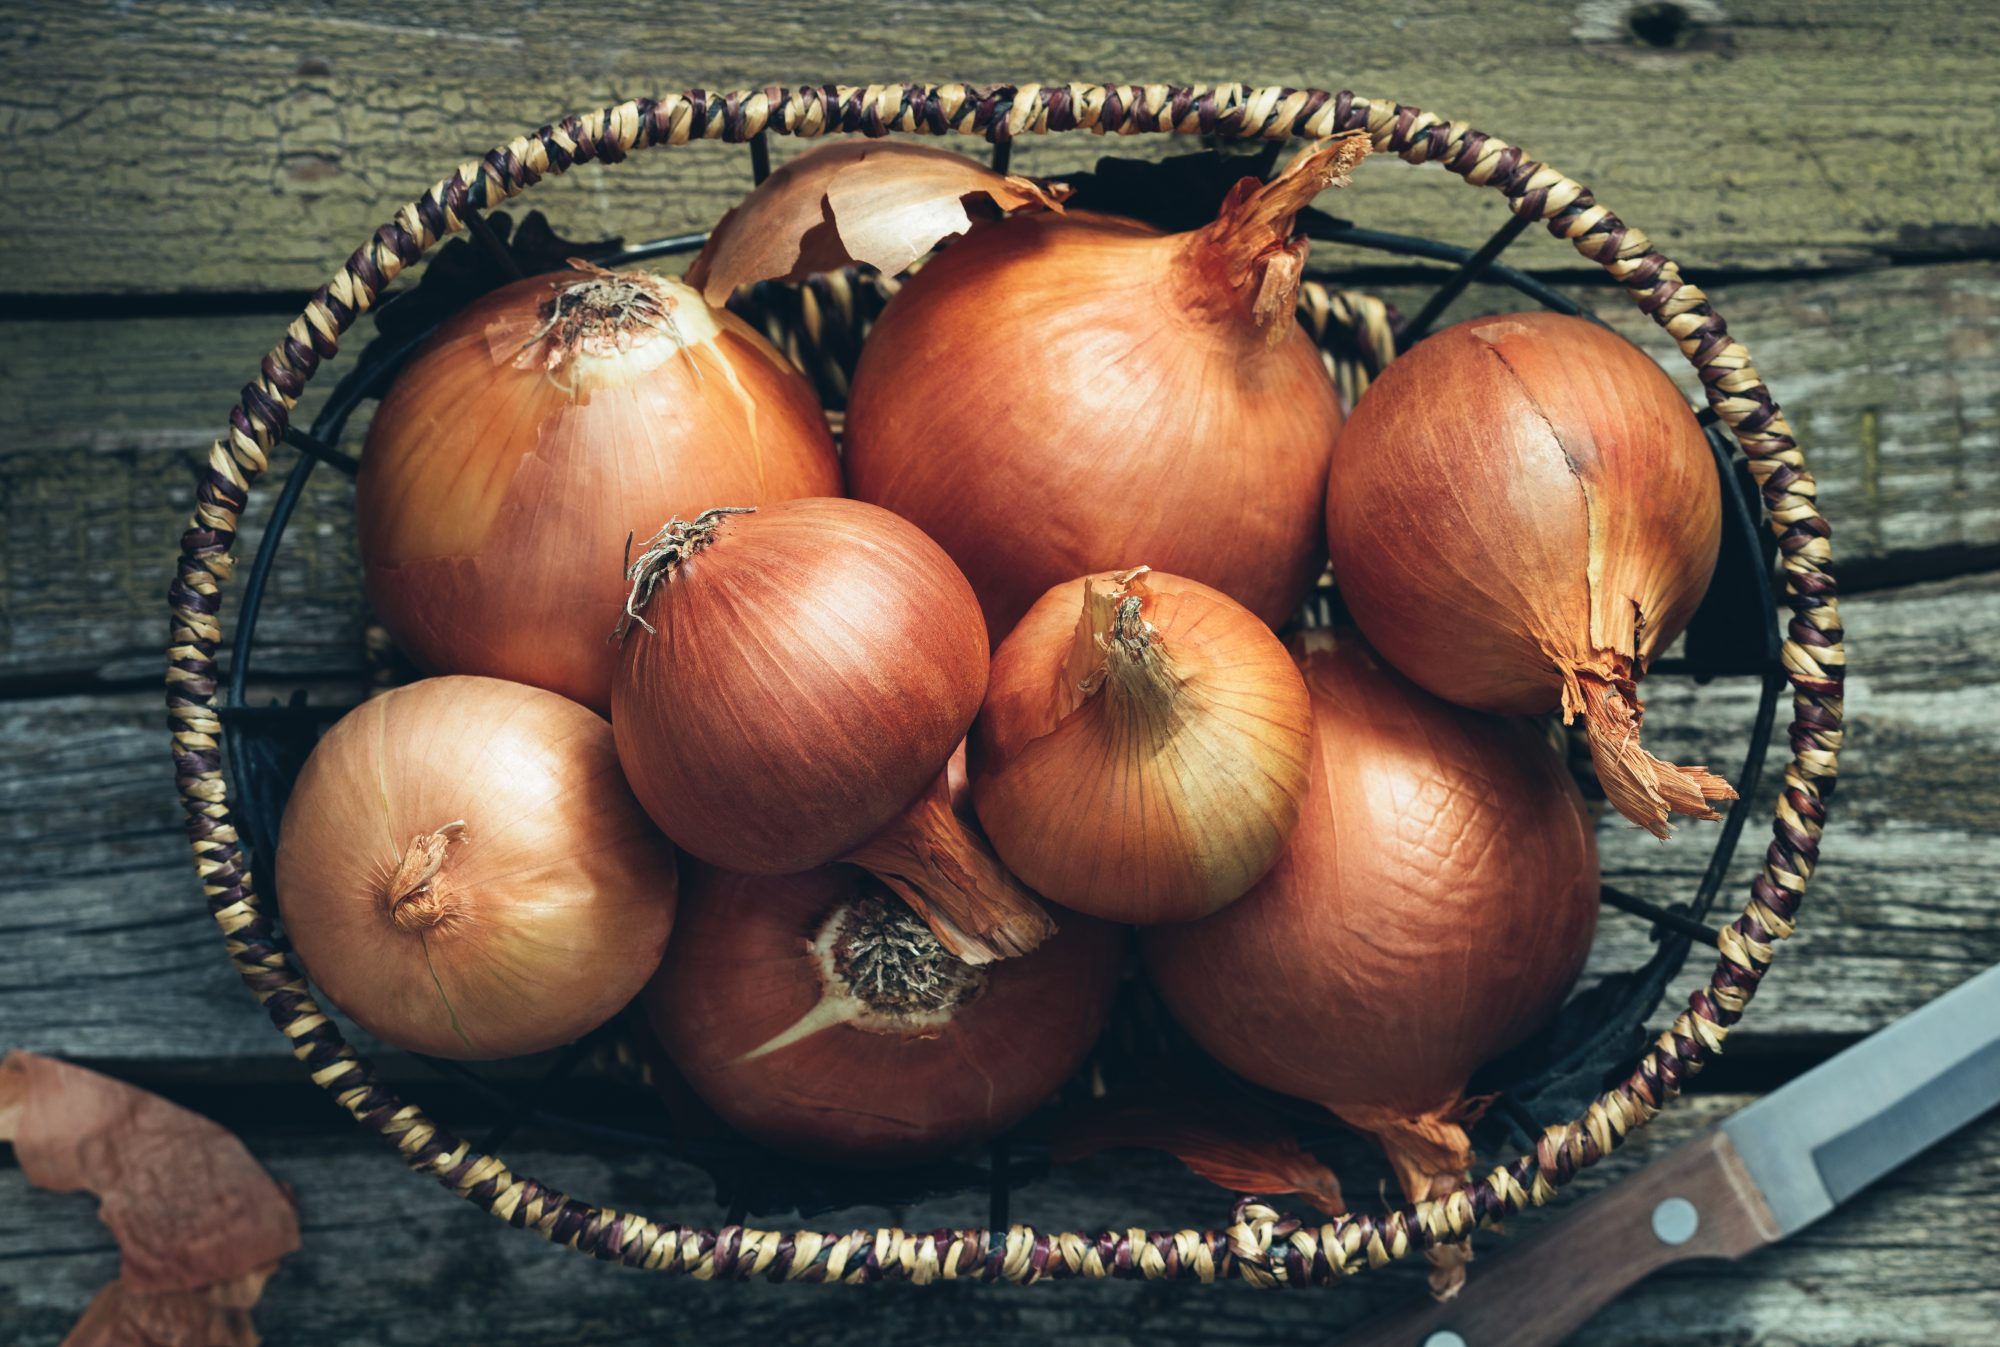 Onions in basket Getty 6/15/20